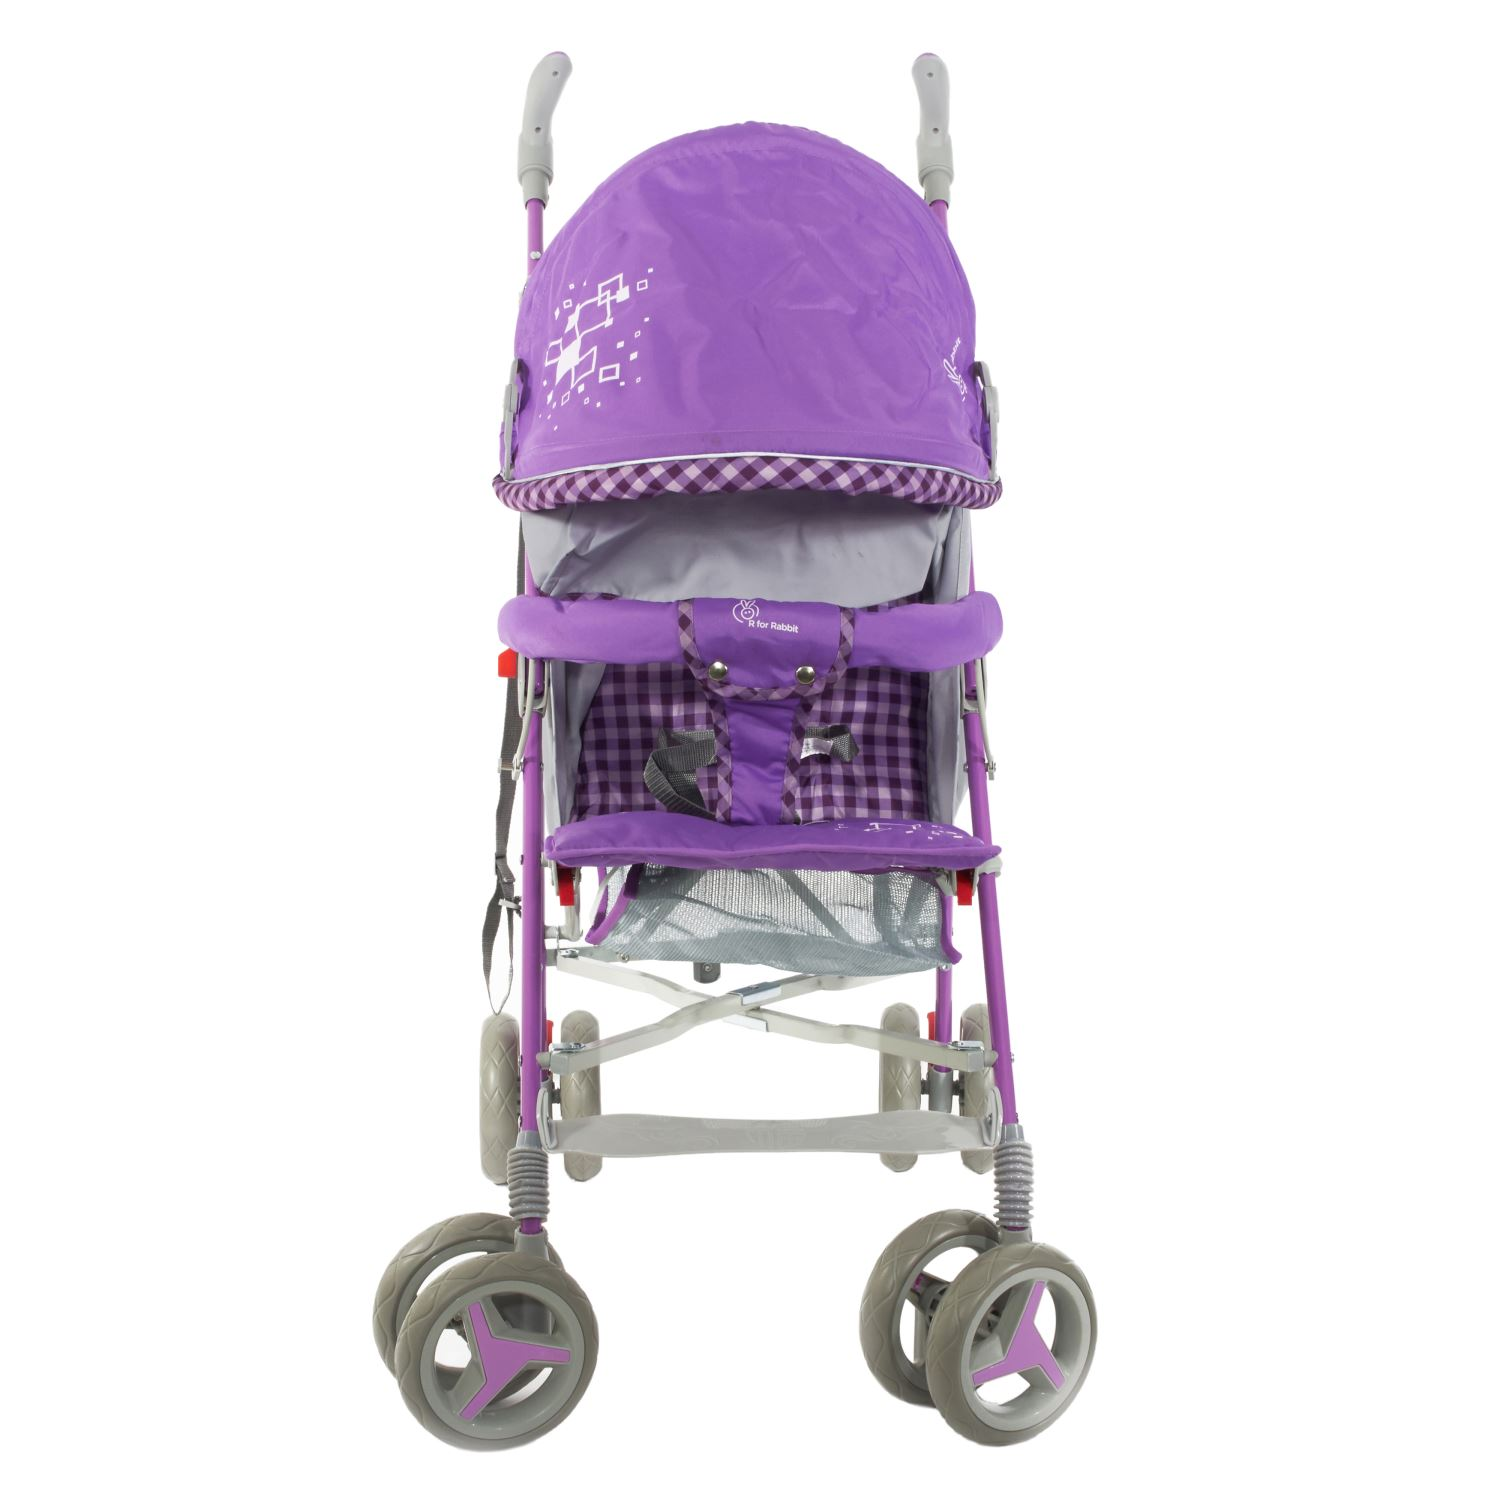 R For Rabbit Twinkle Twinkle Stroller Purple